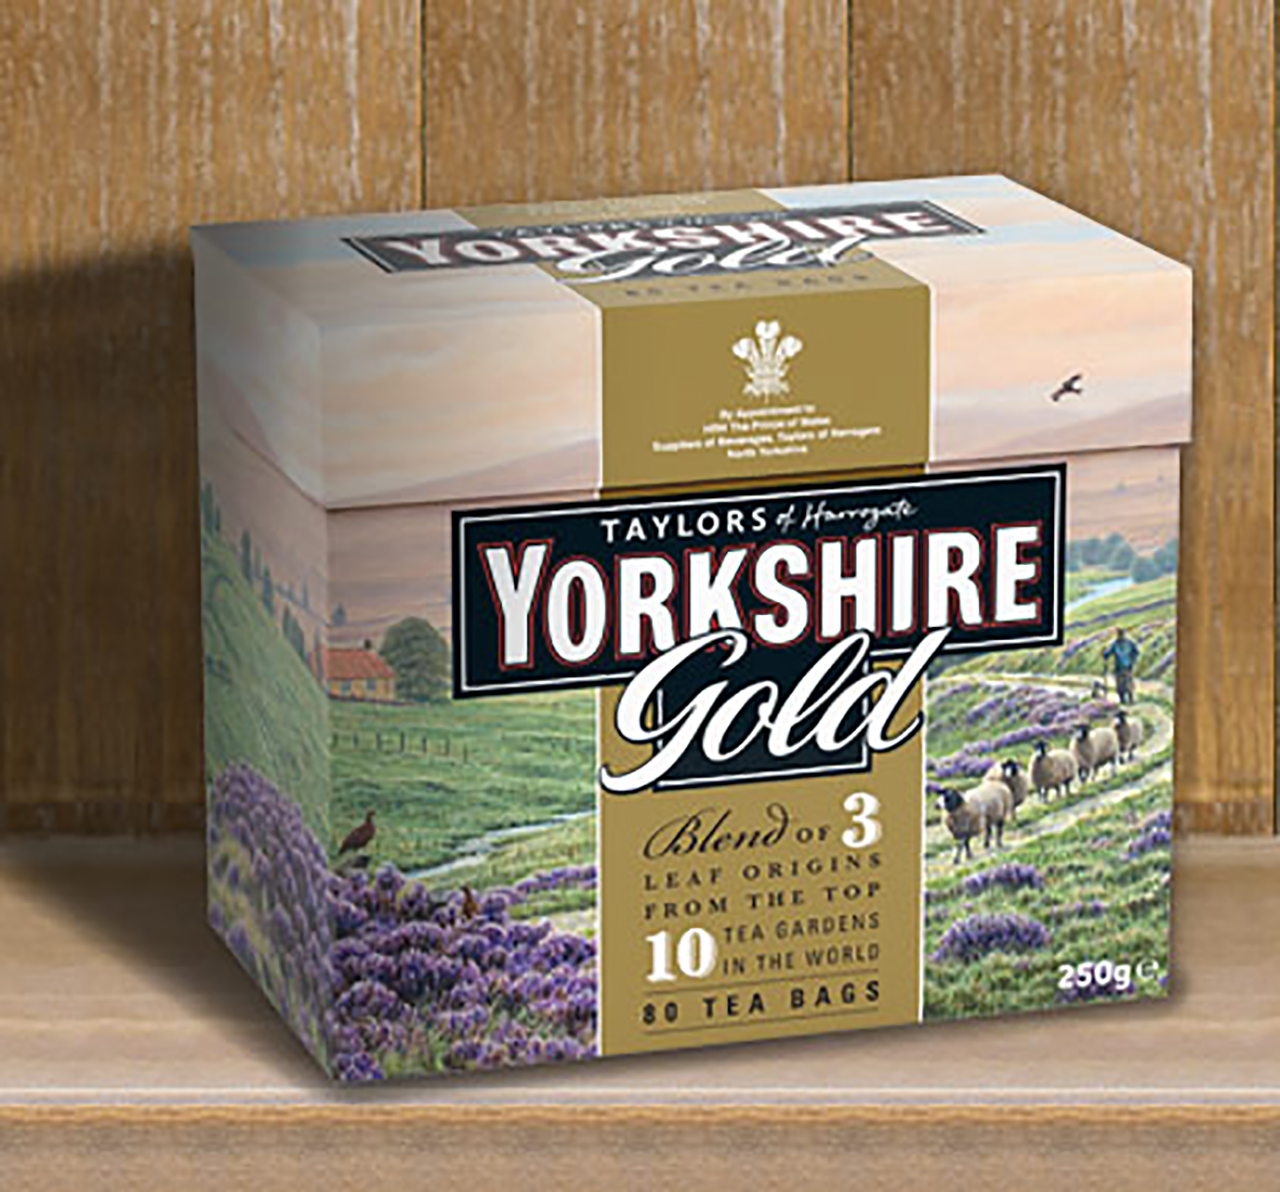 Some Yorkshire Gold would be a nice way to wash down these treats. (Yorkshire Tea)